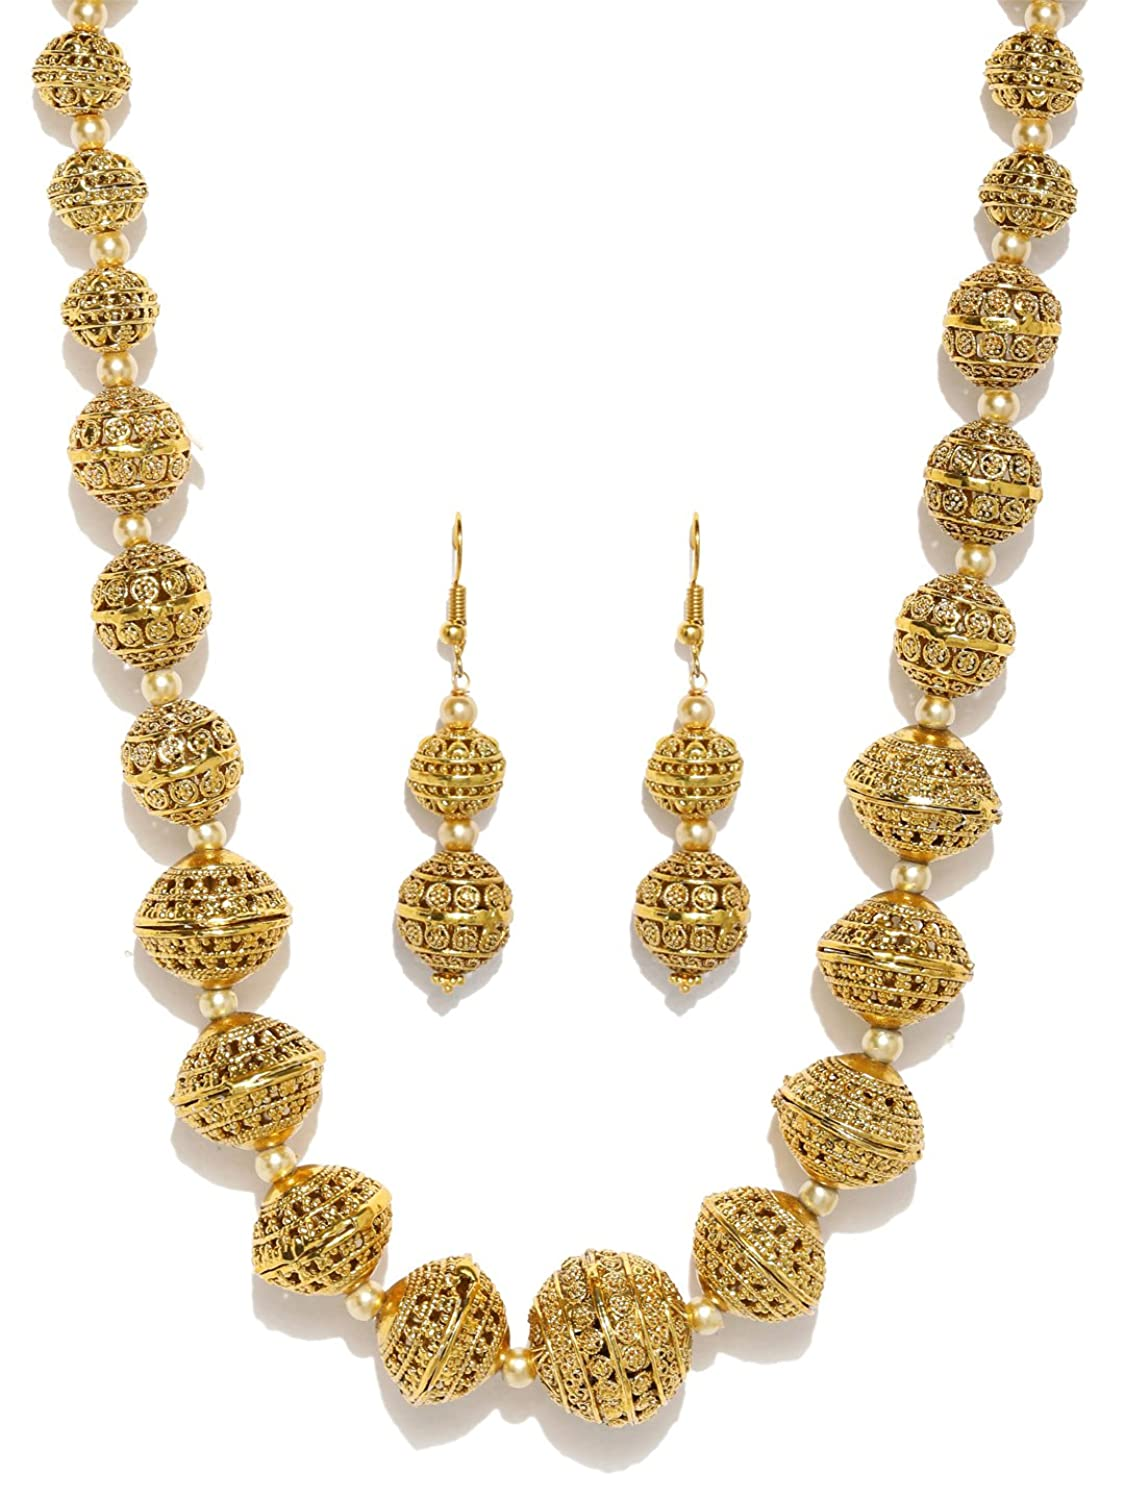 set india maang store women plated jewellery dp with online amazon earrings traditional low buy at gold i in necklace jewels for tikka prices